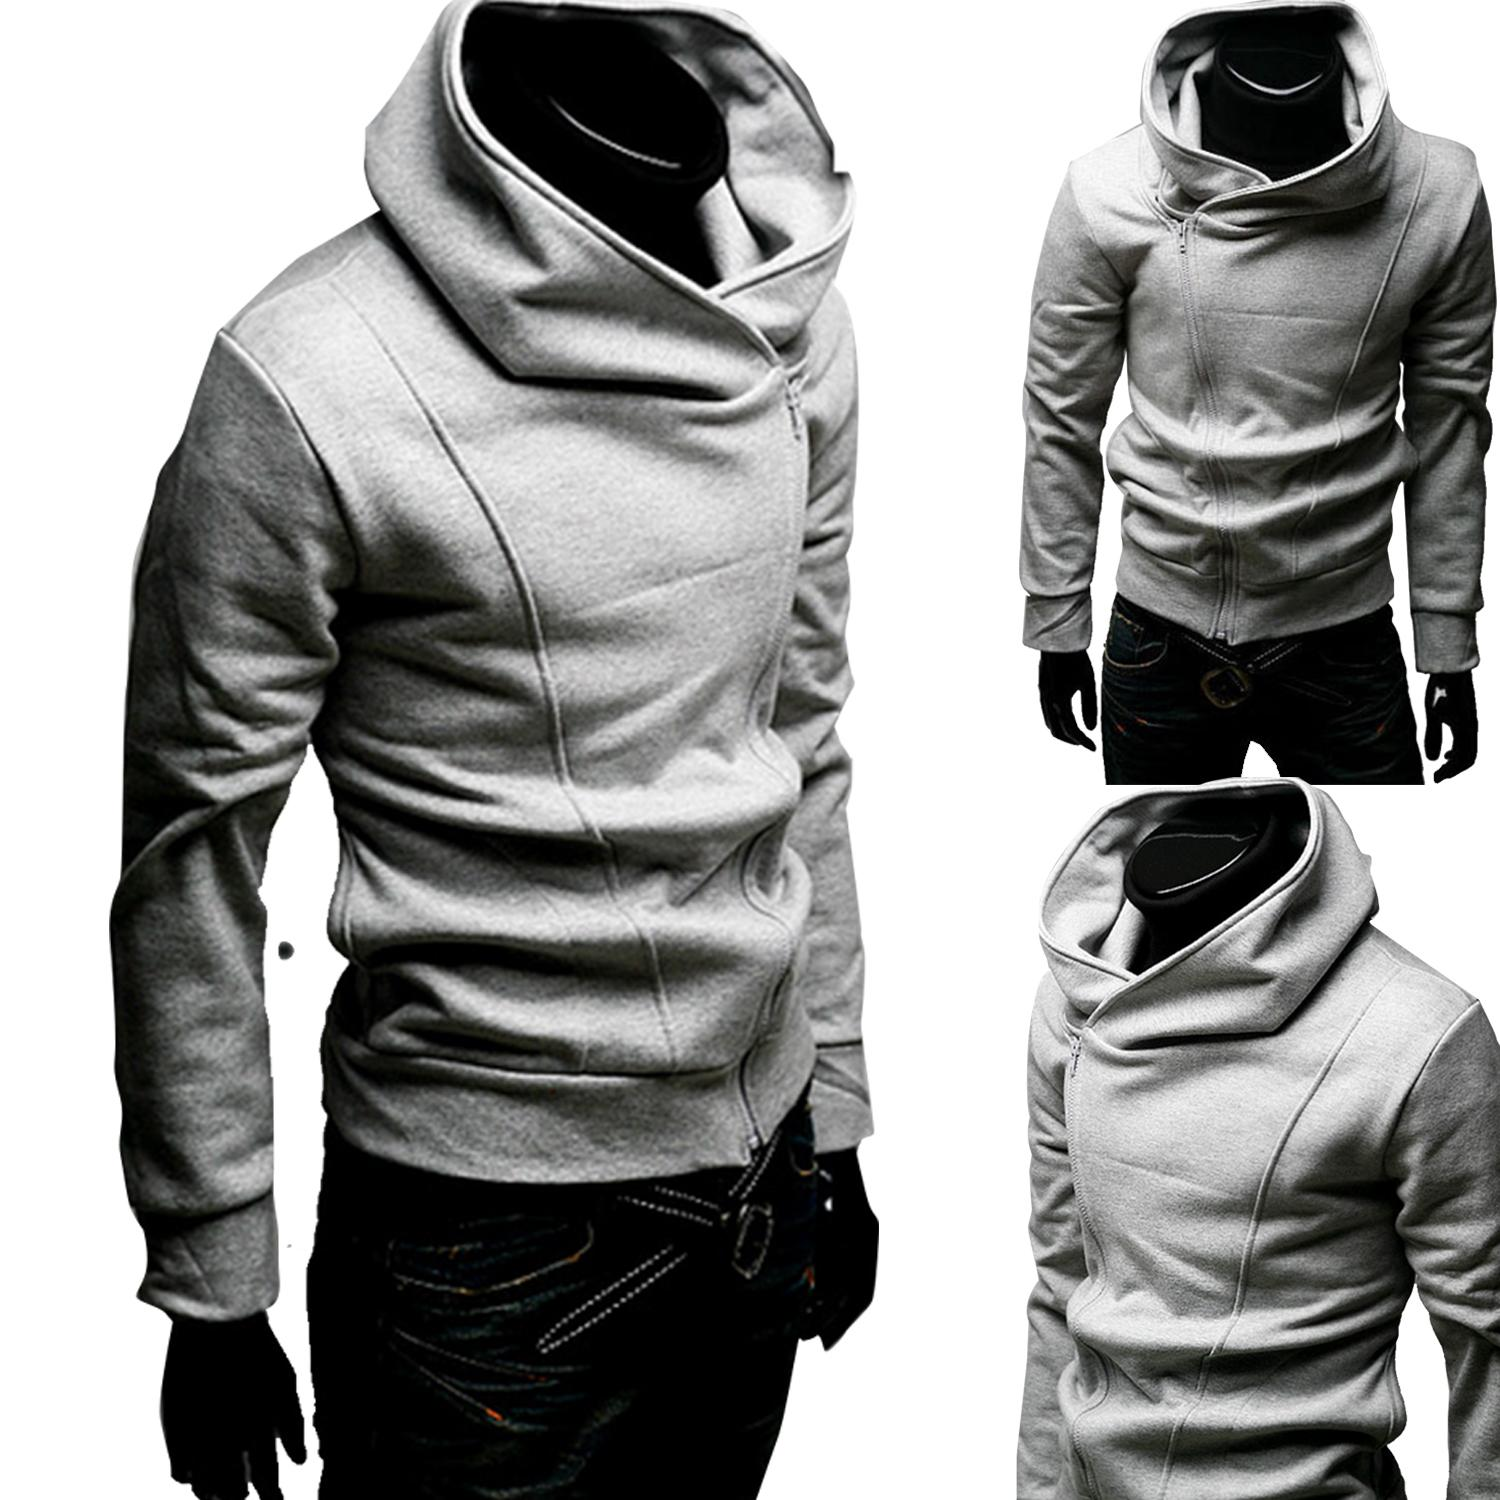 Slim Fit Hooded Jacket Slim Fit Zipped Jacket Zip Hooded Jacket Men Zipped Jacket Zip Up Hoodie For Men Zipper Hooded Hoodie Zip Up Hoodie For Men Assassins Creed Cosplay Hoodie Slim Fit Casual Coat Hoodies Coat Sports Suit Casual Fashion Mens Clothing By Ef-Fashion.